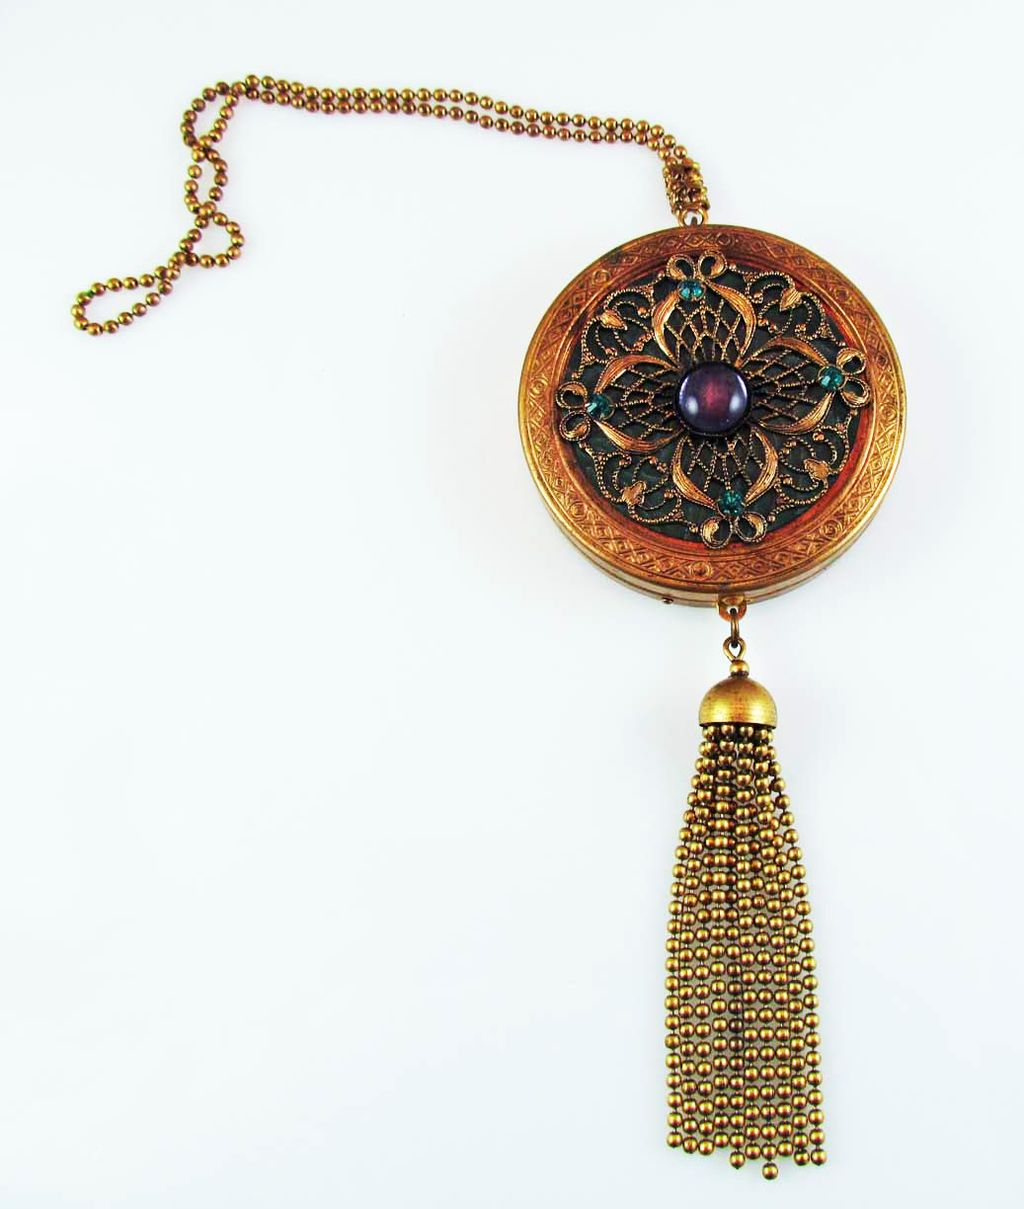 Vintage Brass Filigree Wrist Compact  With Ball Chain Fringe